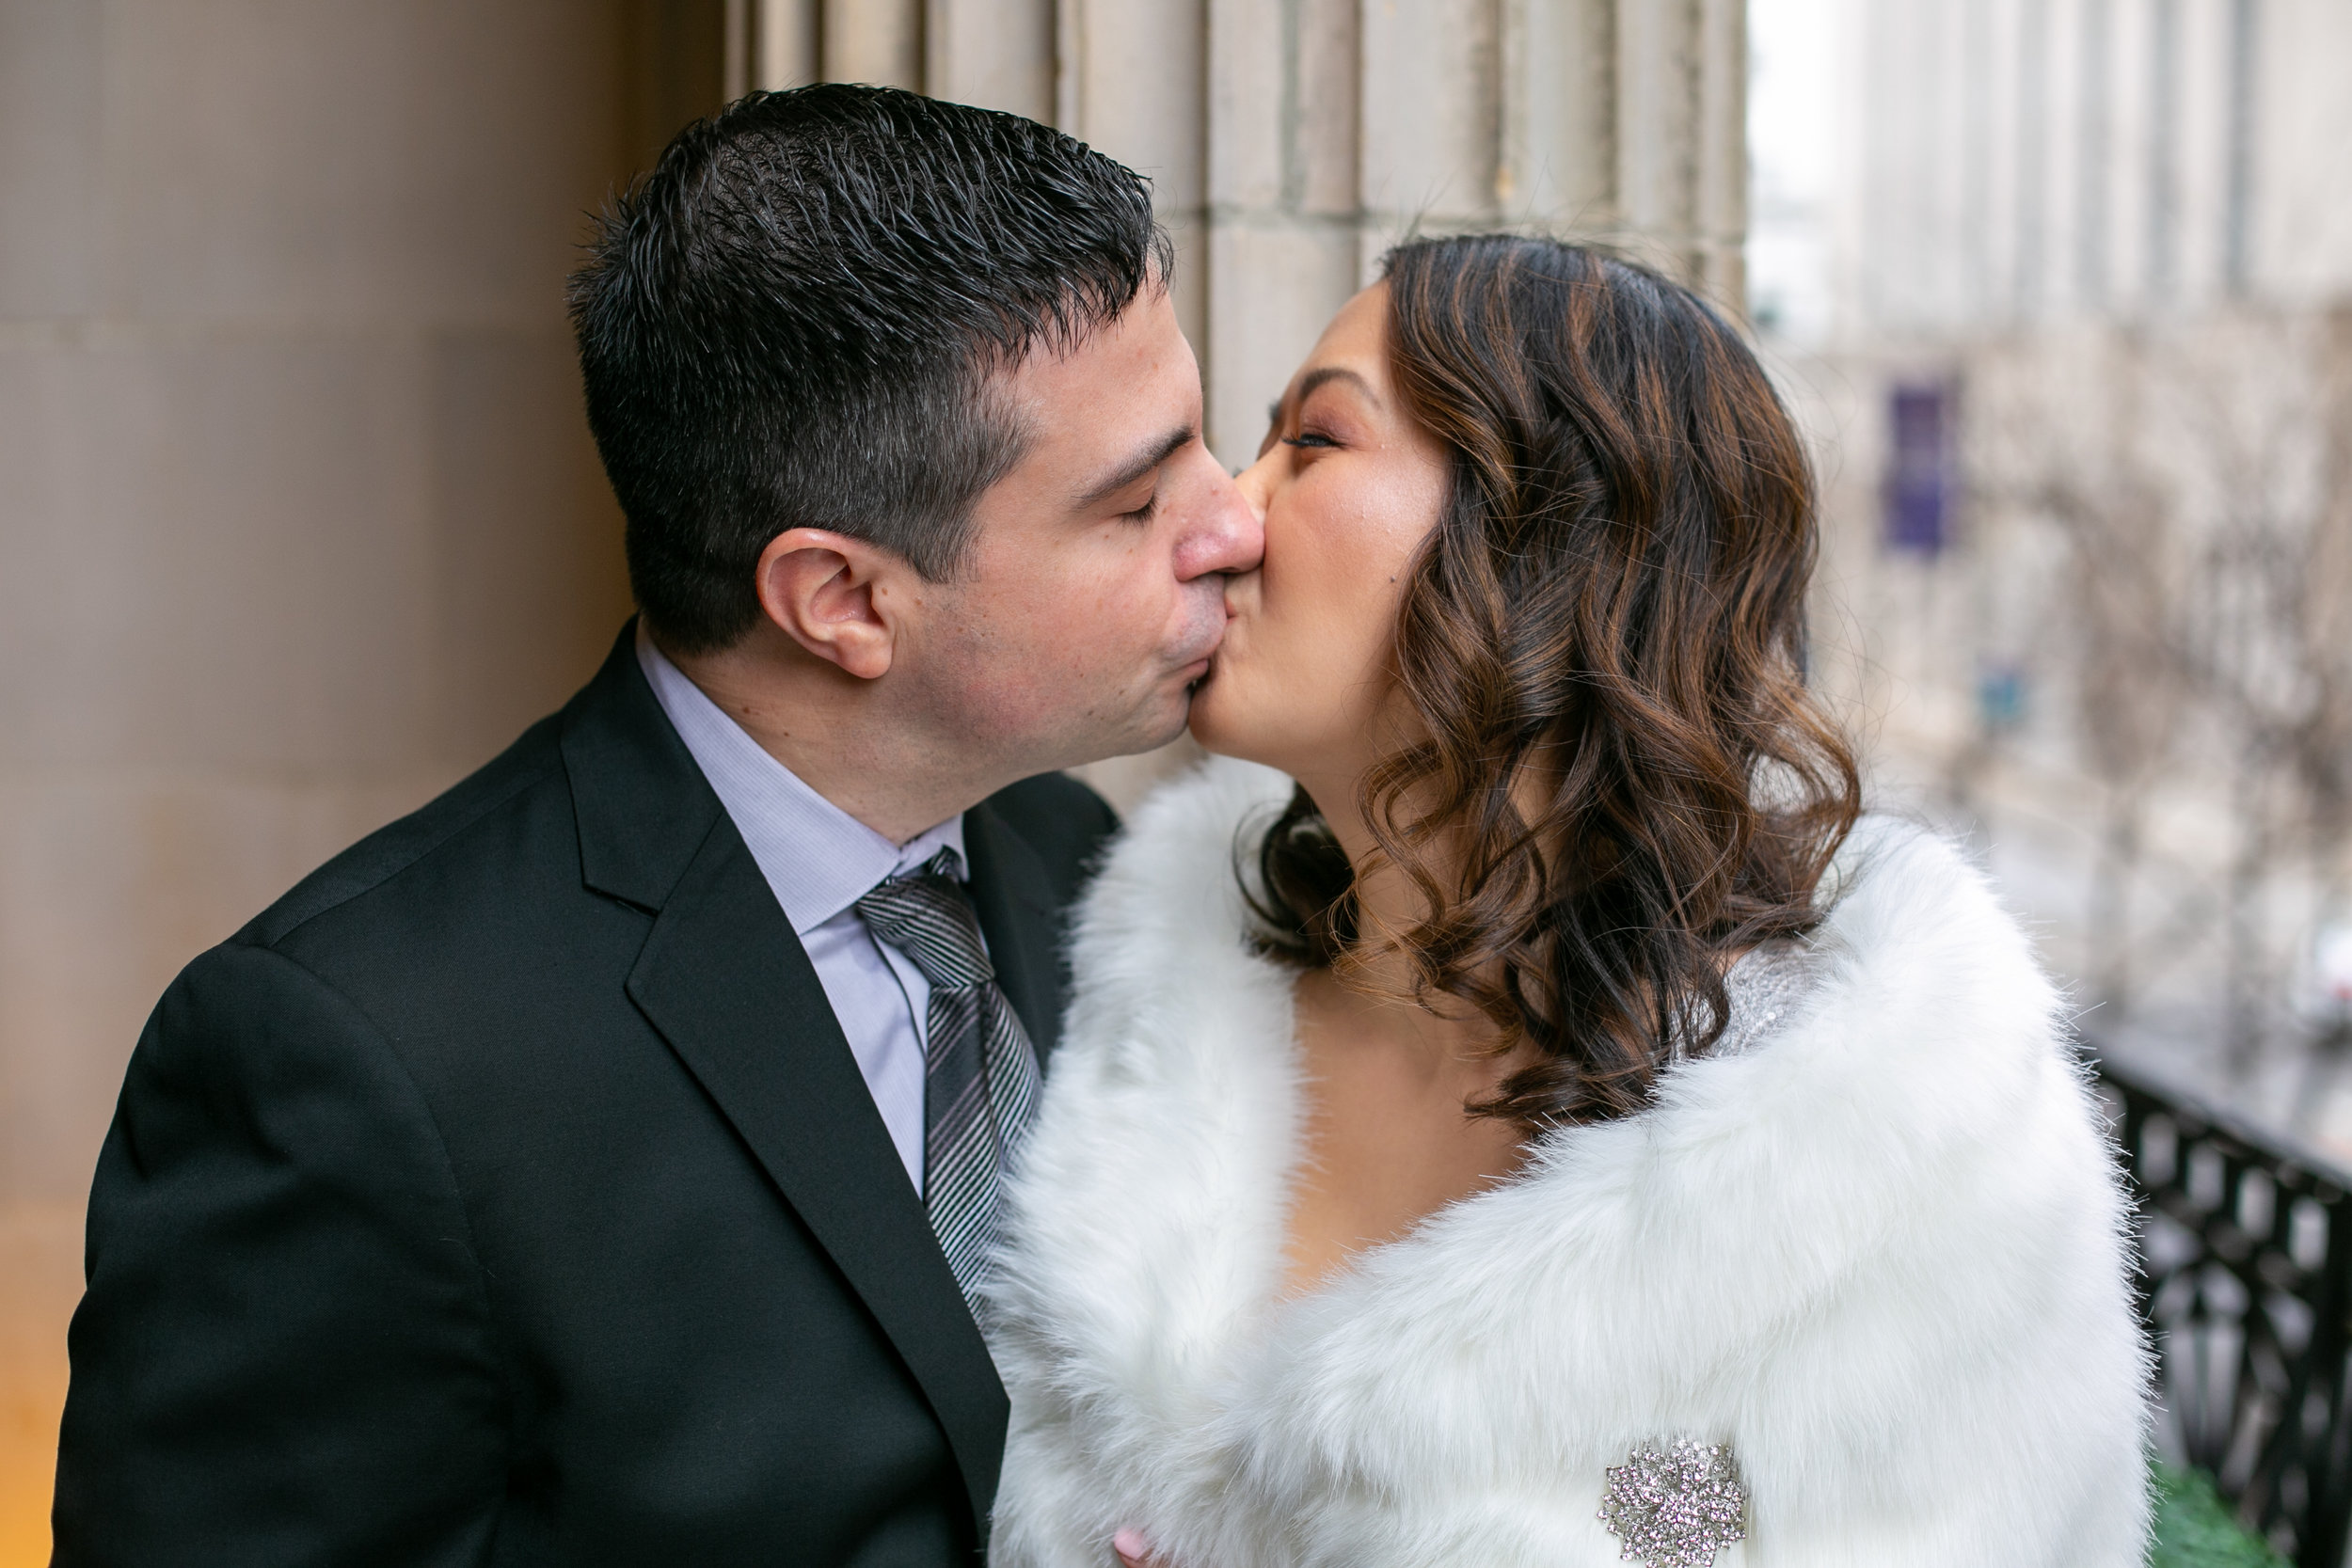 Philadelphia Wedding The Franklin Washington Square Valley Green Inn Avi Loren Fox-2270.jpg